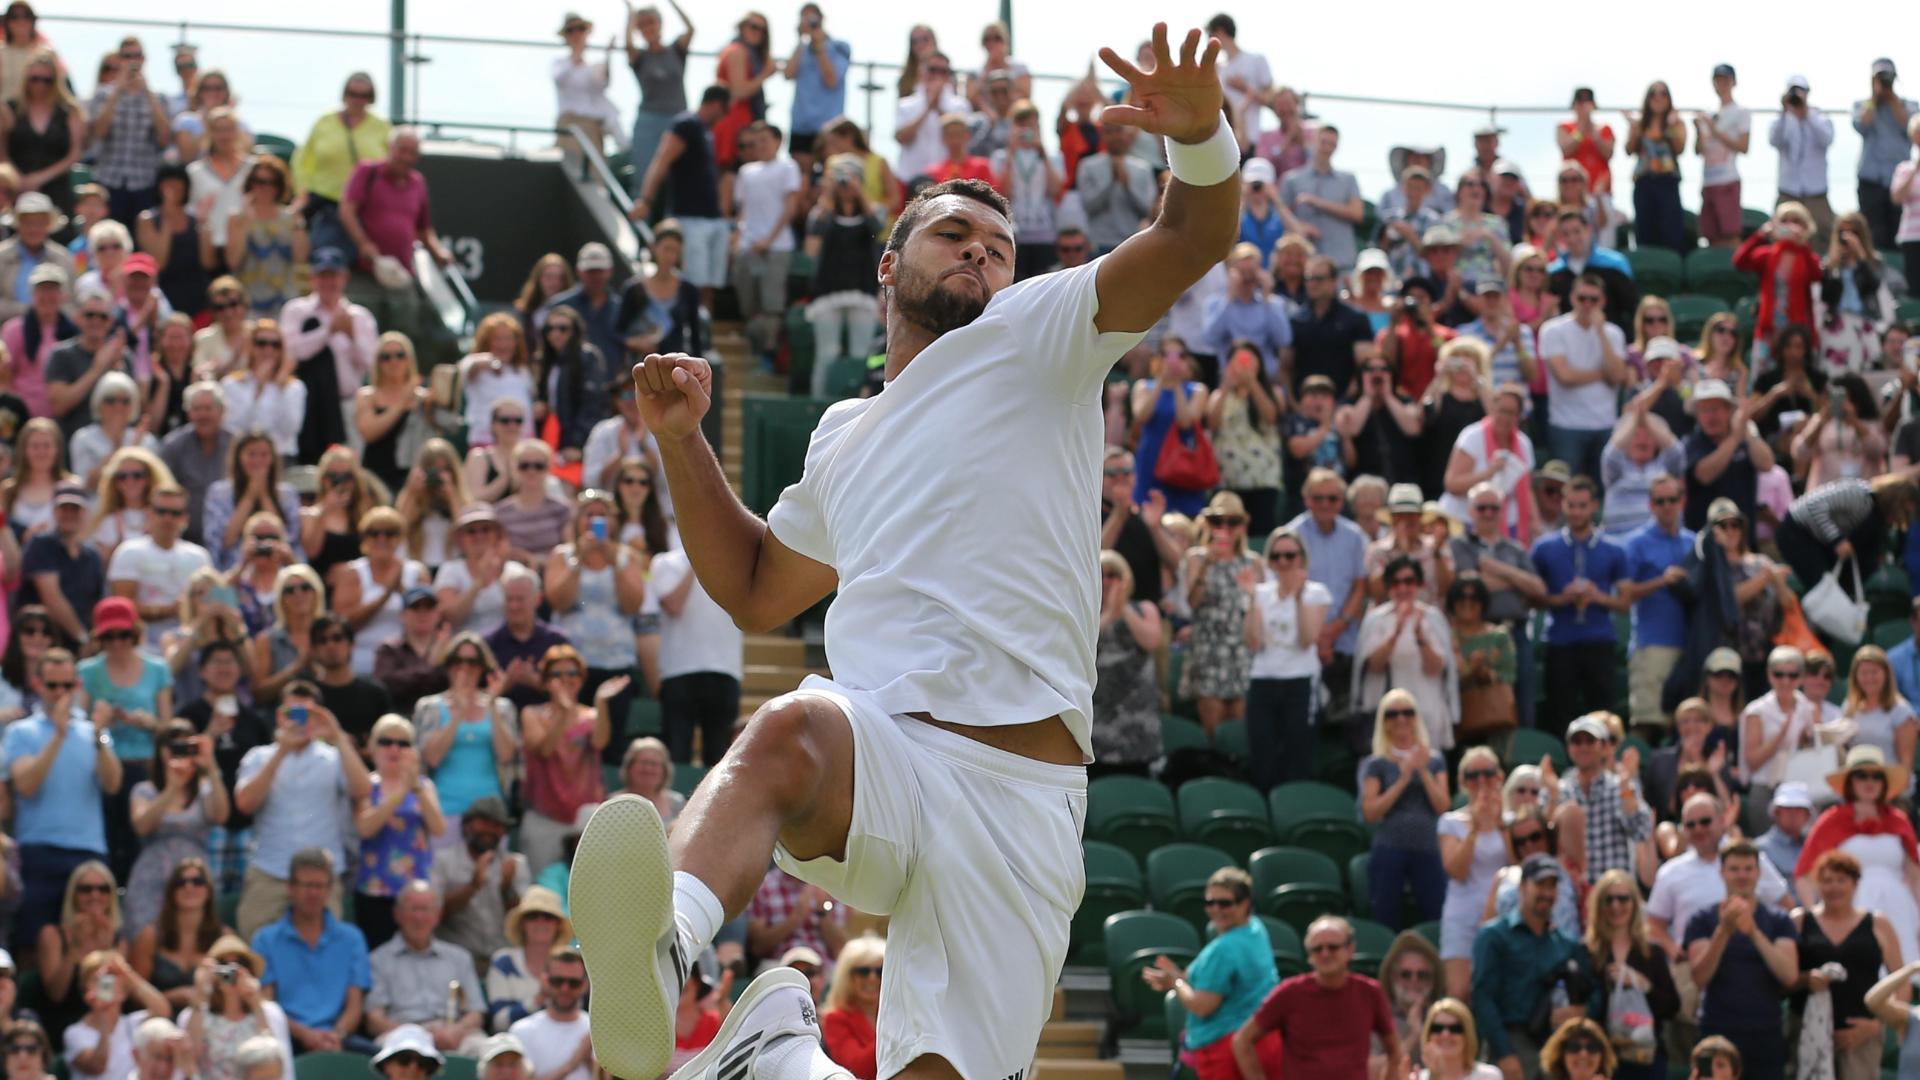 Tsonga Enhances Victory Dance